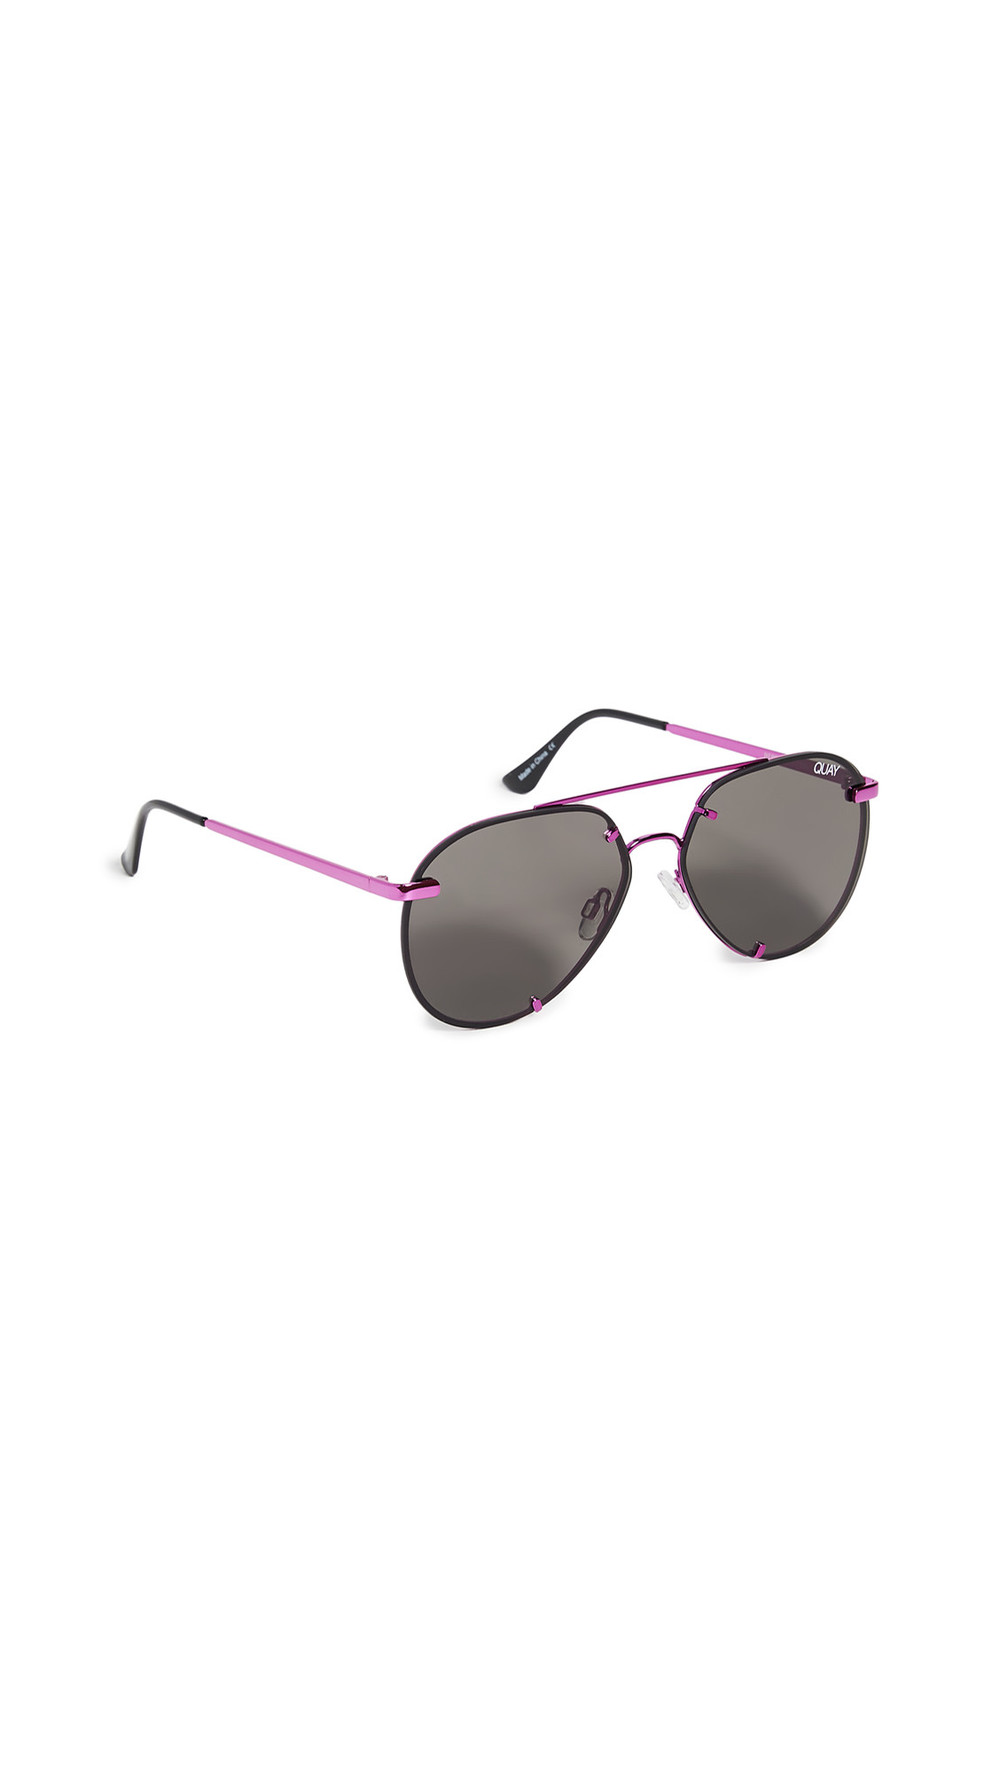 Quay Rebelle Sunglasses in pink